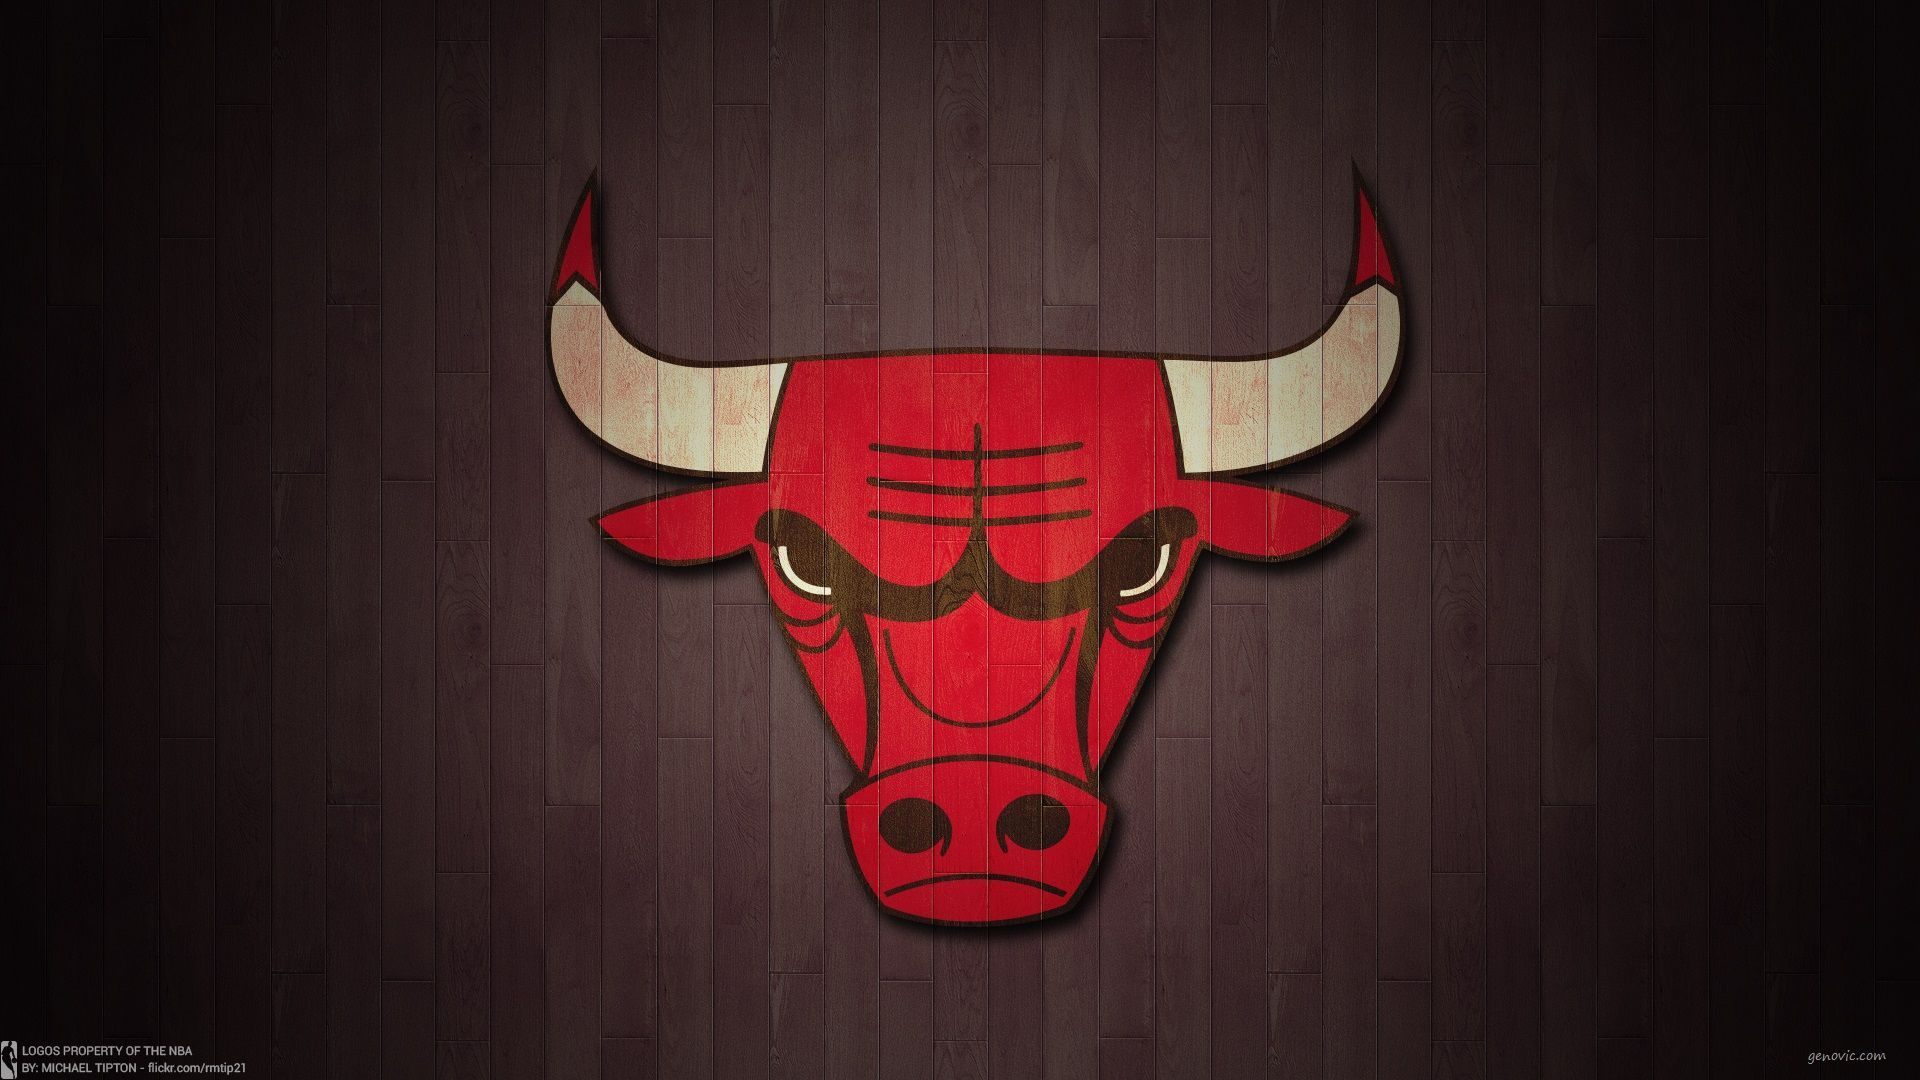 1920x1080 - Chicago Bulls HD 8